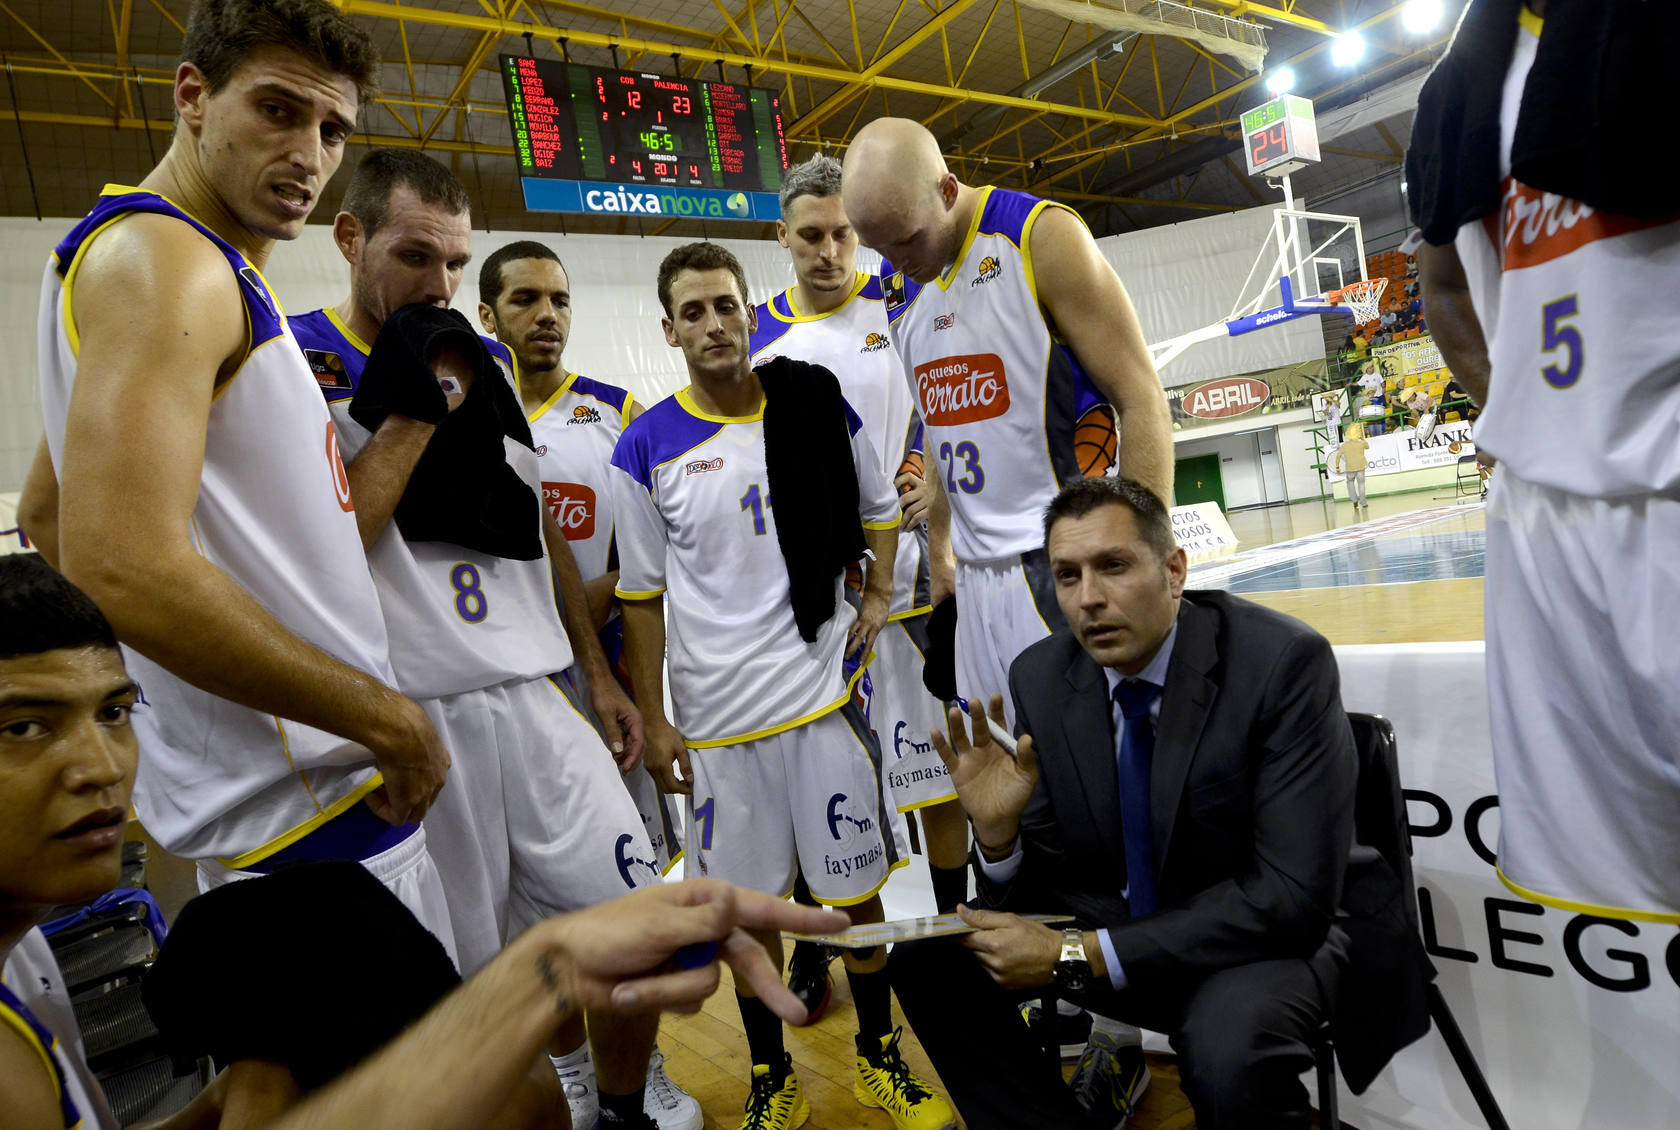 Aguas Sousas de Ourense 68-93 Palencia Baloncesto